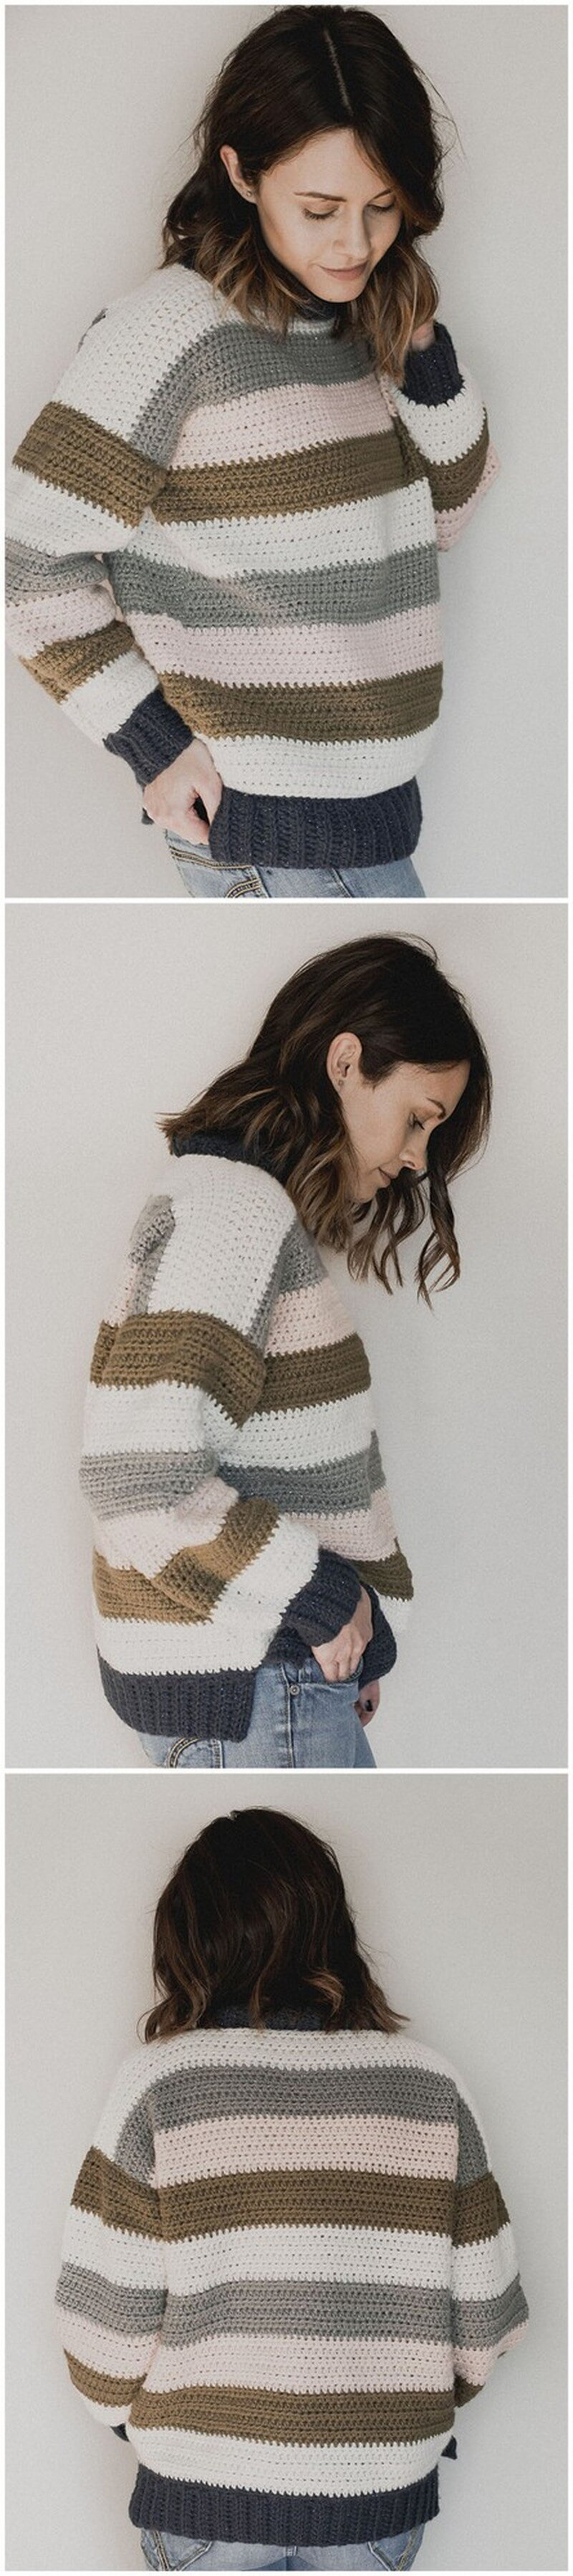 Crochet Sweater Pattern (20)